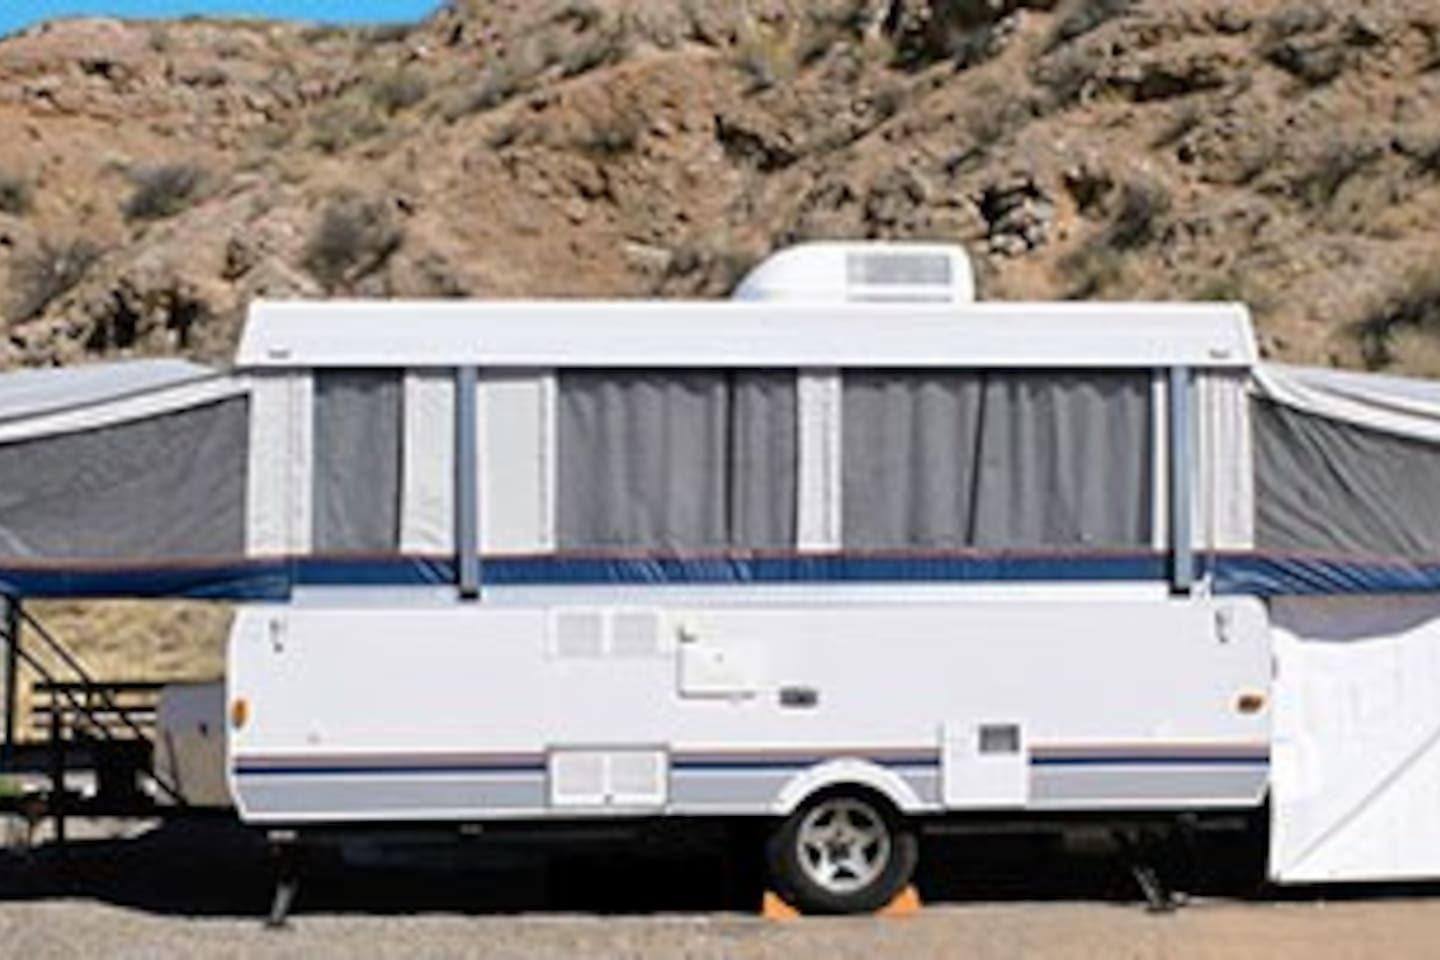 RV Park and Camping in quiet place of Sonora Desert.